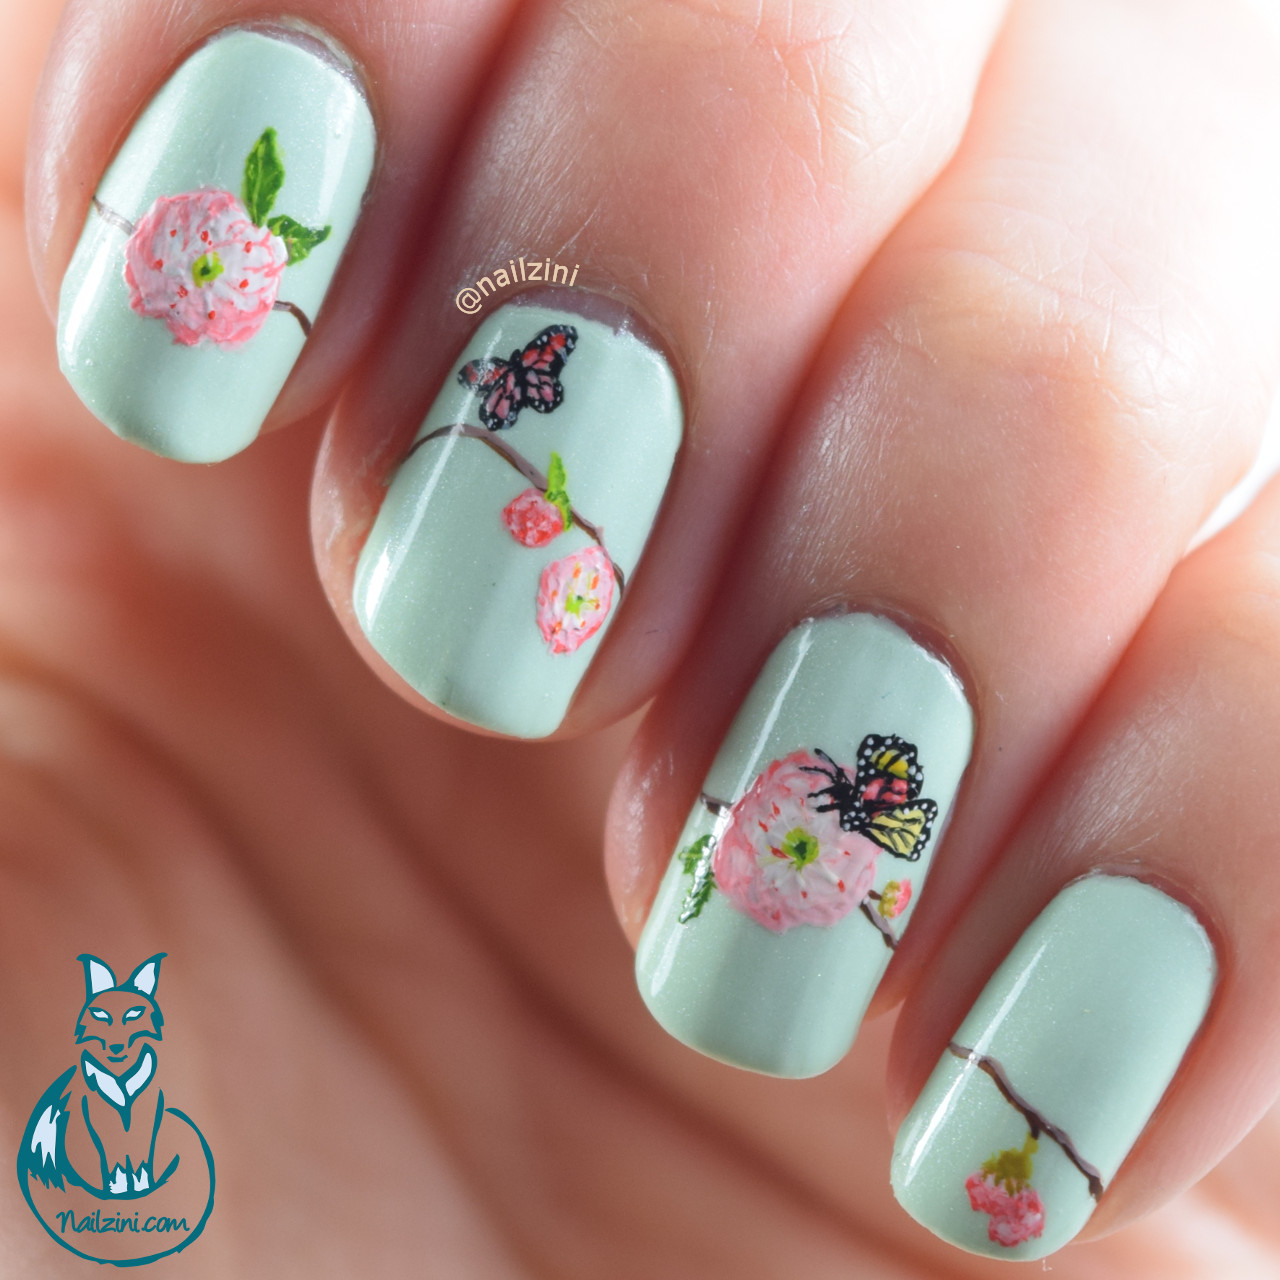 Spring flower nail art nailzini a nail art blog spring flower nail art mightylinksfo